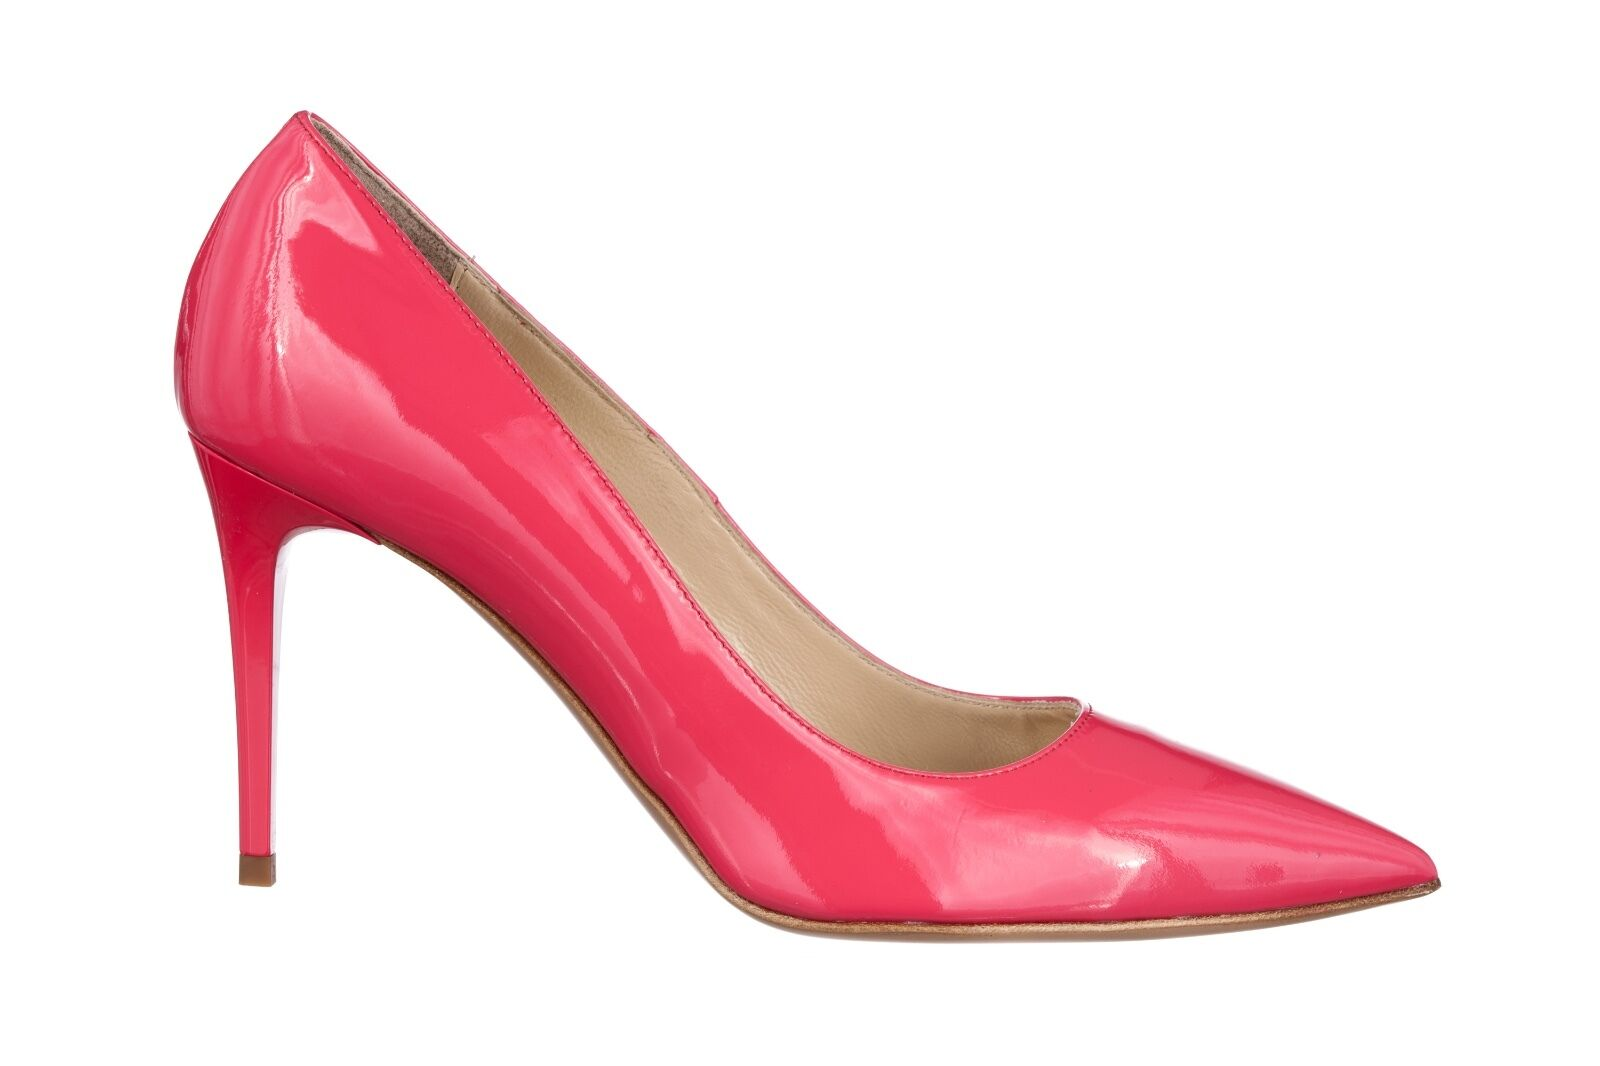 Descuento de liquidación MORI MADE IN ITALY POINTY HIGH HEELS PUMPS DECOLTE SCHUHE LEATHER PINK FUXIA 39